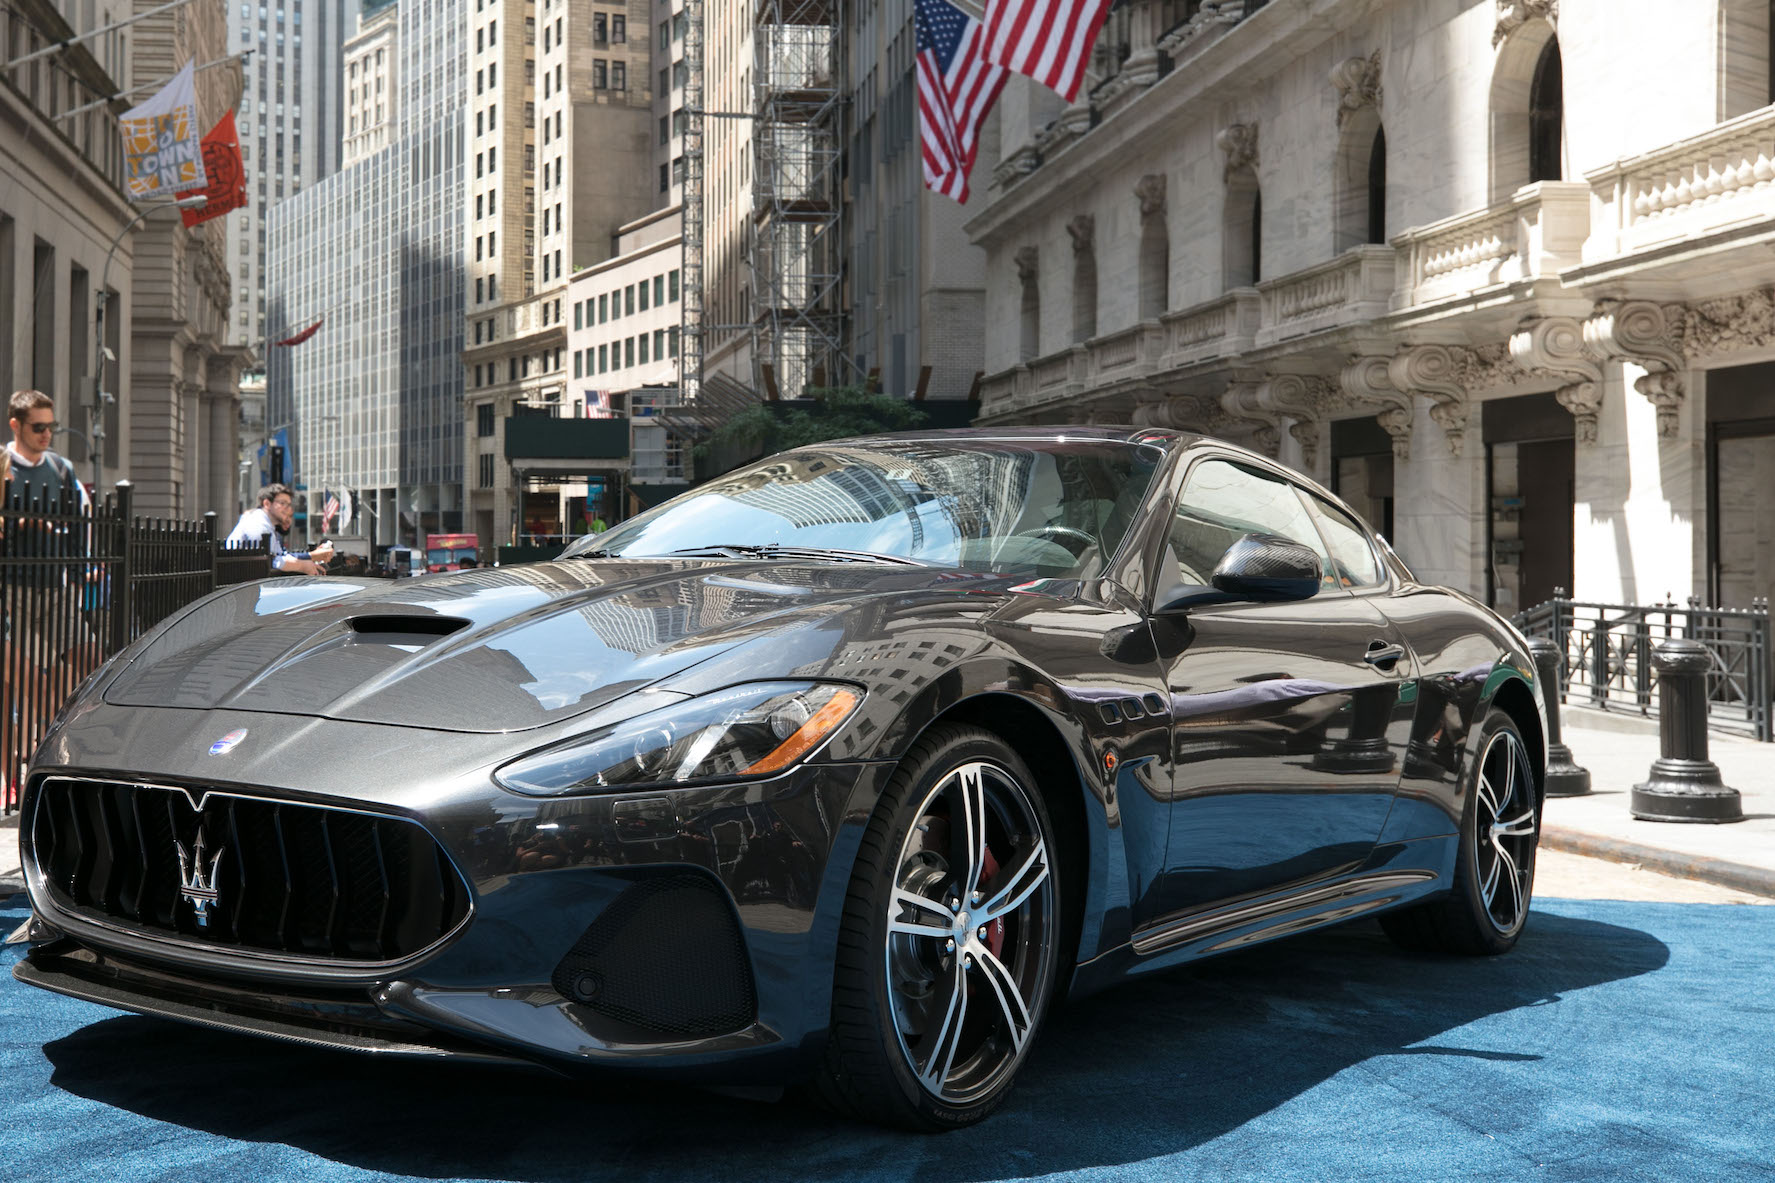 maserati has chosen the new york stock exchange as the venue to unveil the model year 2018 granturismo mc with its restyled exterior in grigio granito